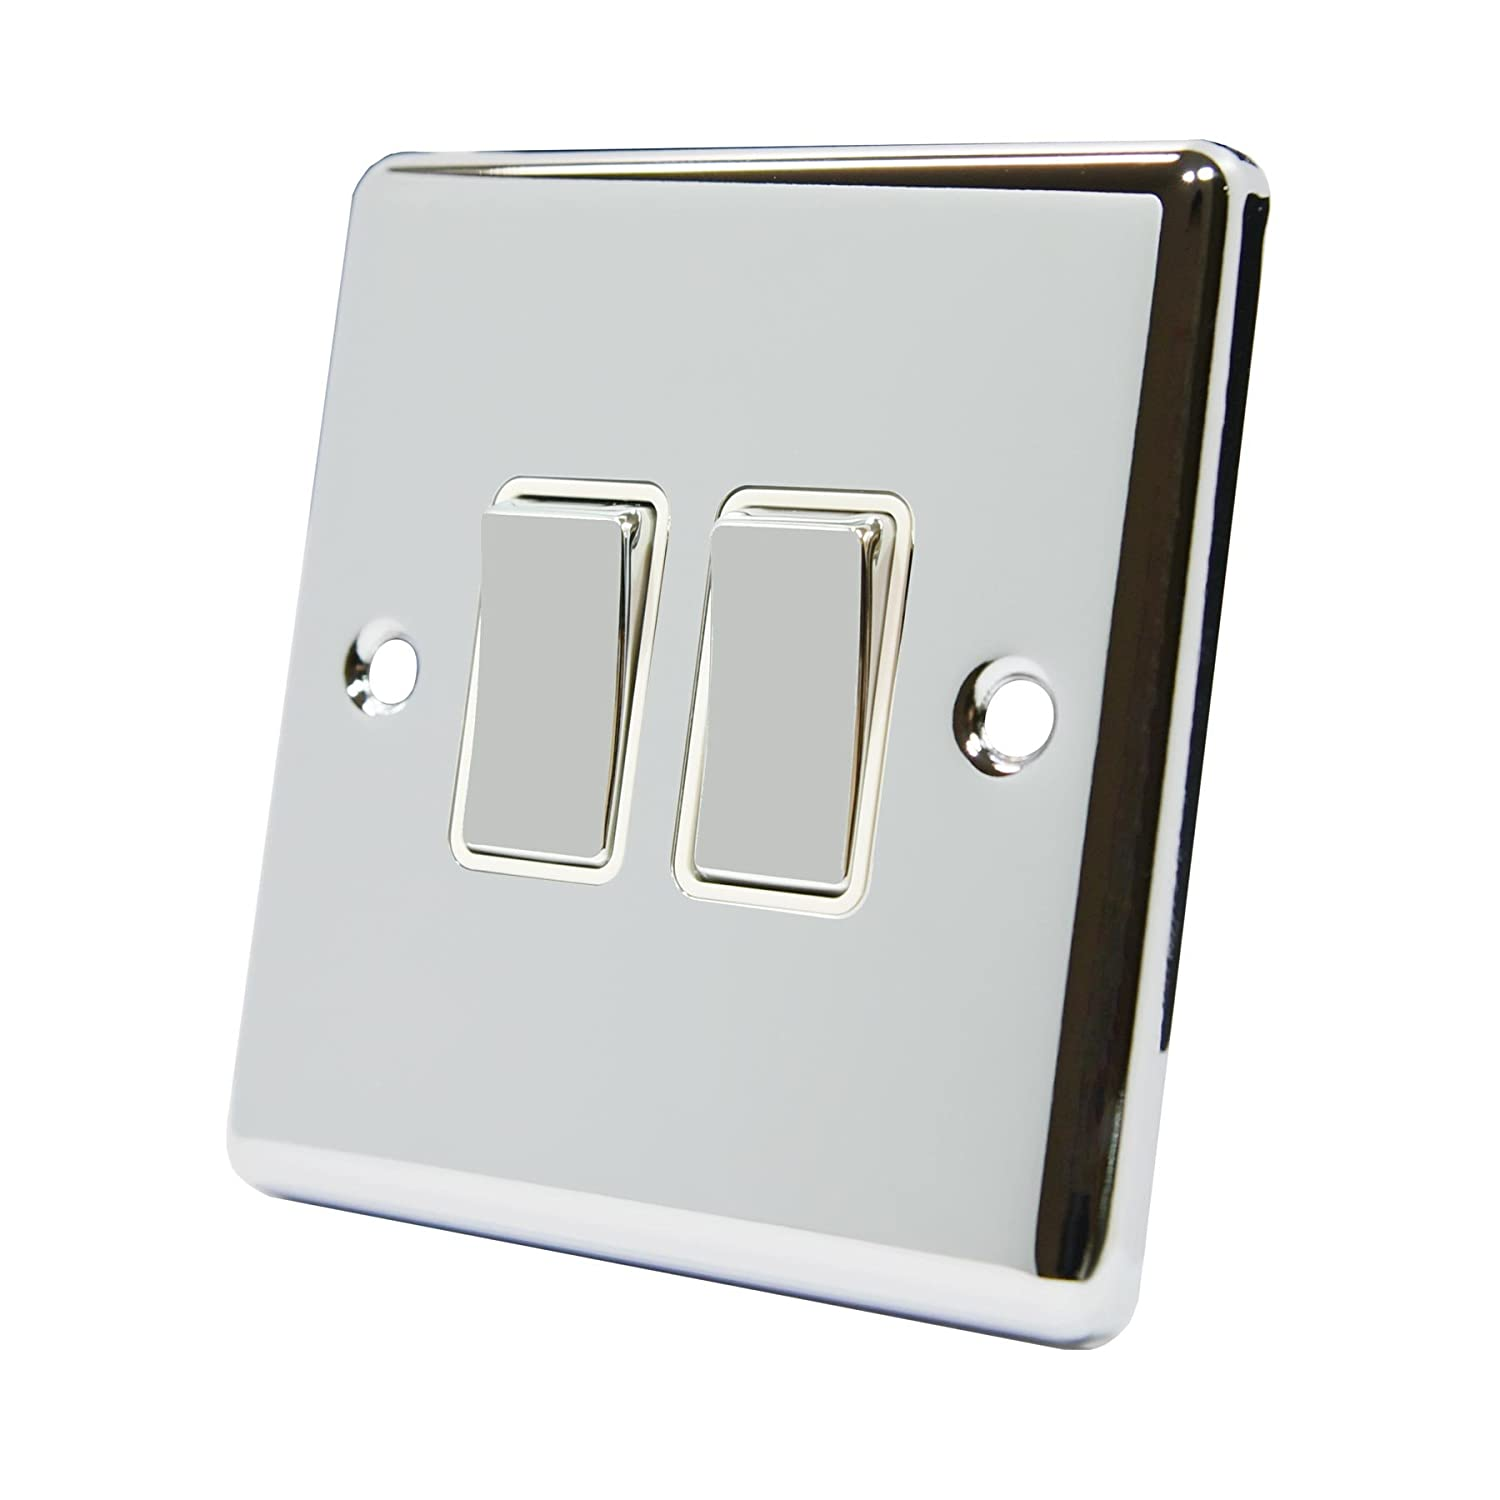 Light Switch 2 Gang Polished Chrome - Classic - White Insert Metal Rocker Switches - 10A Double 2 Way AET SWI2GCCWC